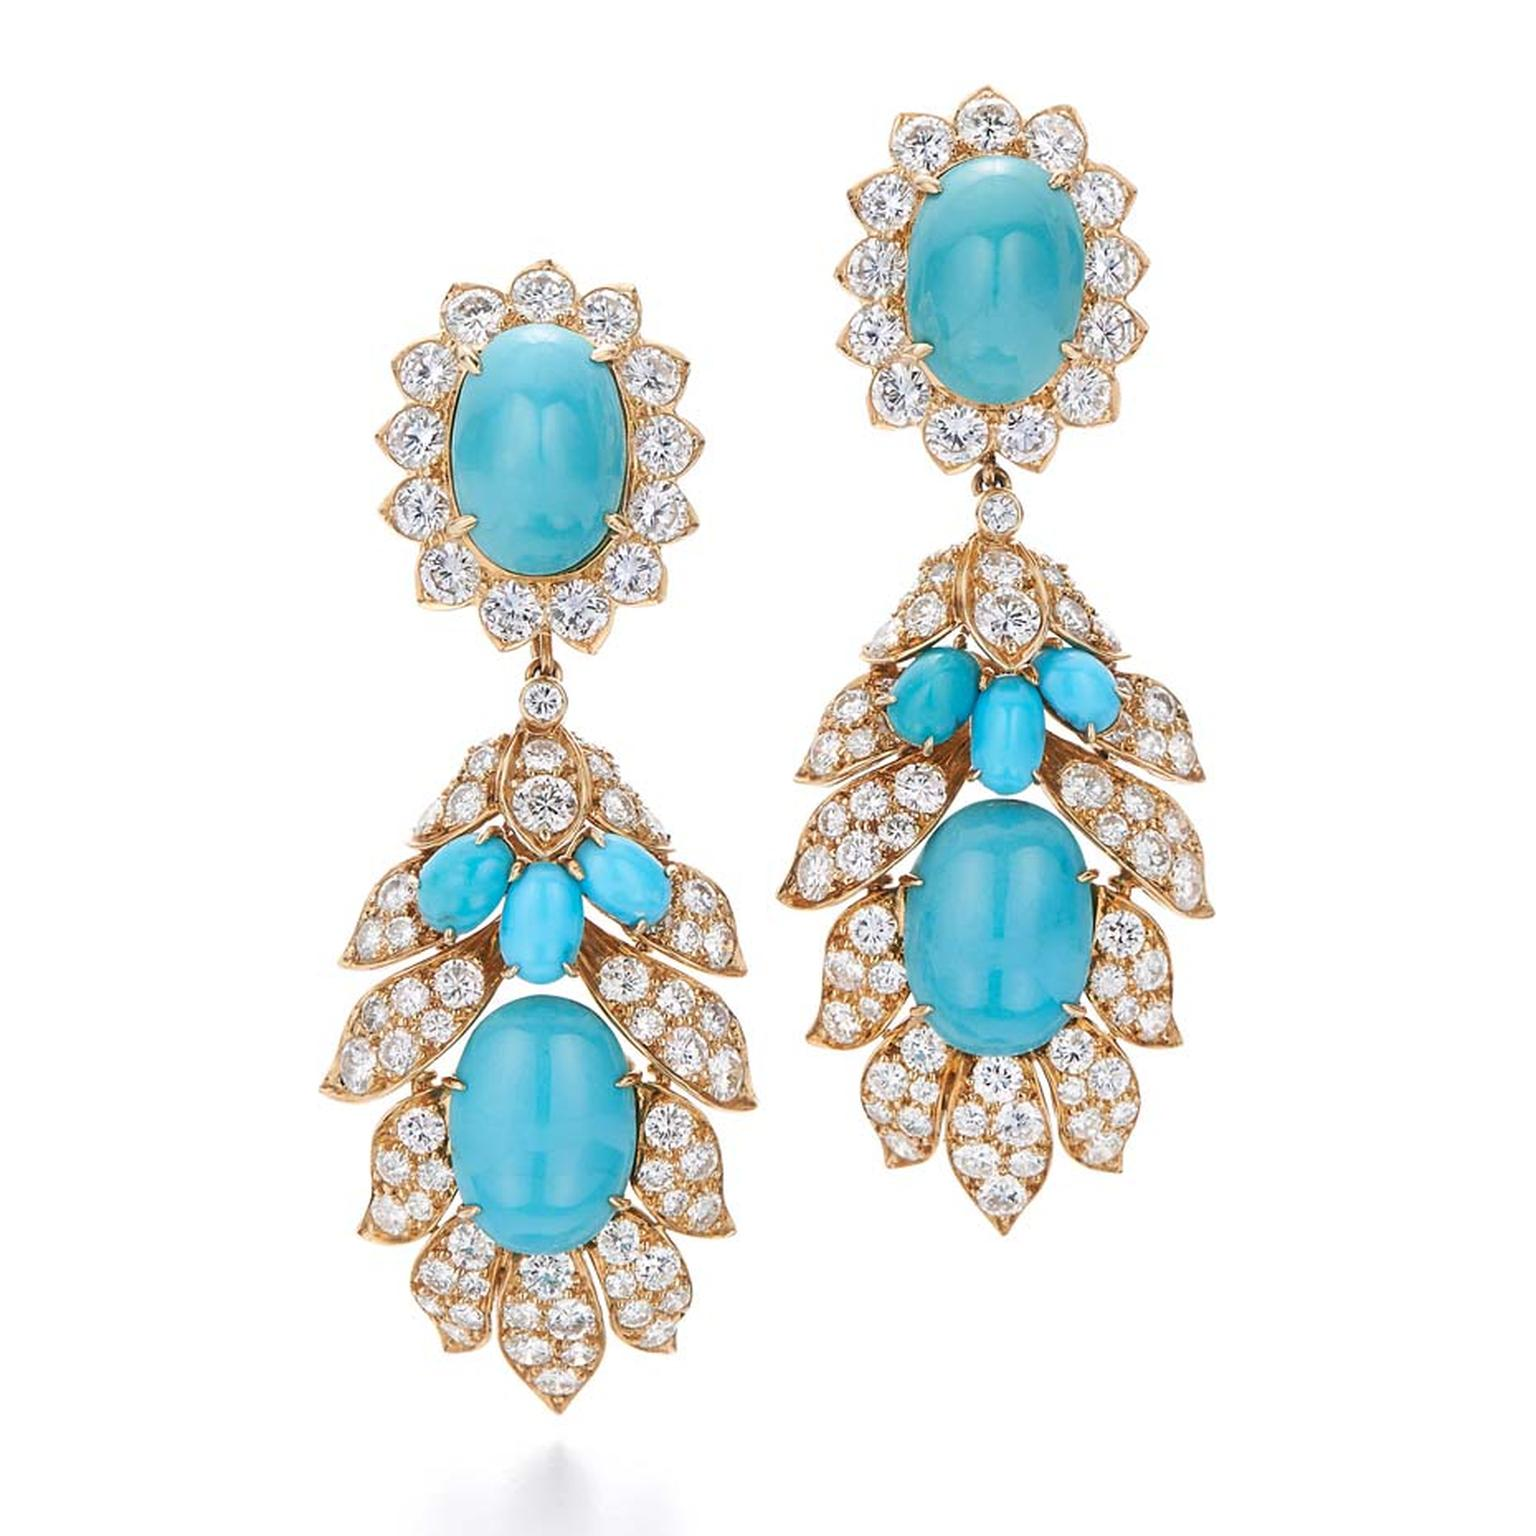 1960s Van Cleef & Arpels diamond and turquoise Day to Night earrings, available from Fred Leighton at 1stdibs.com ($125,000).